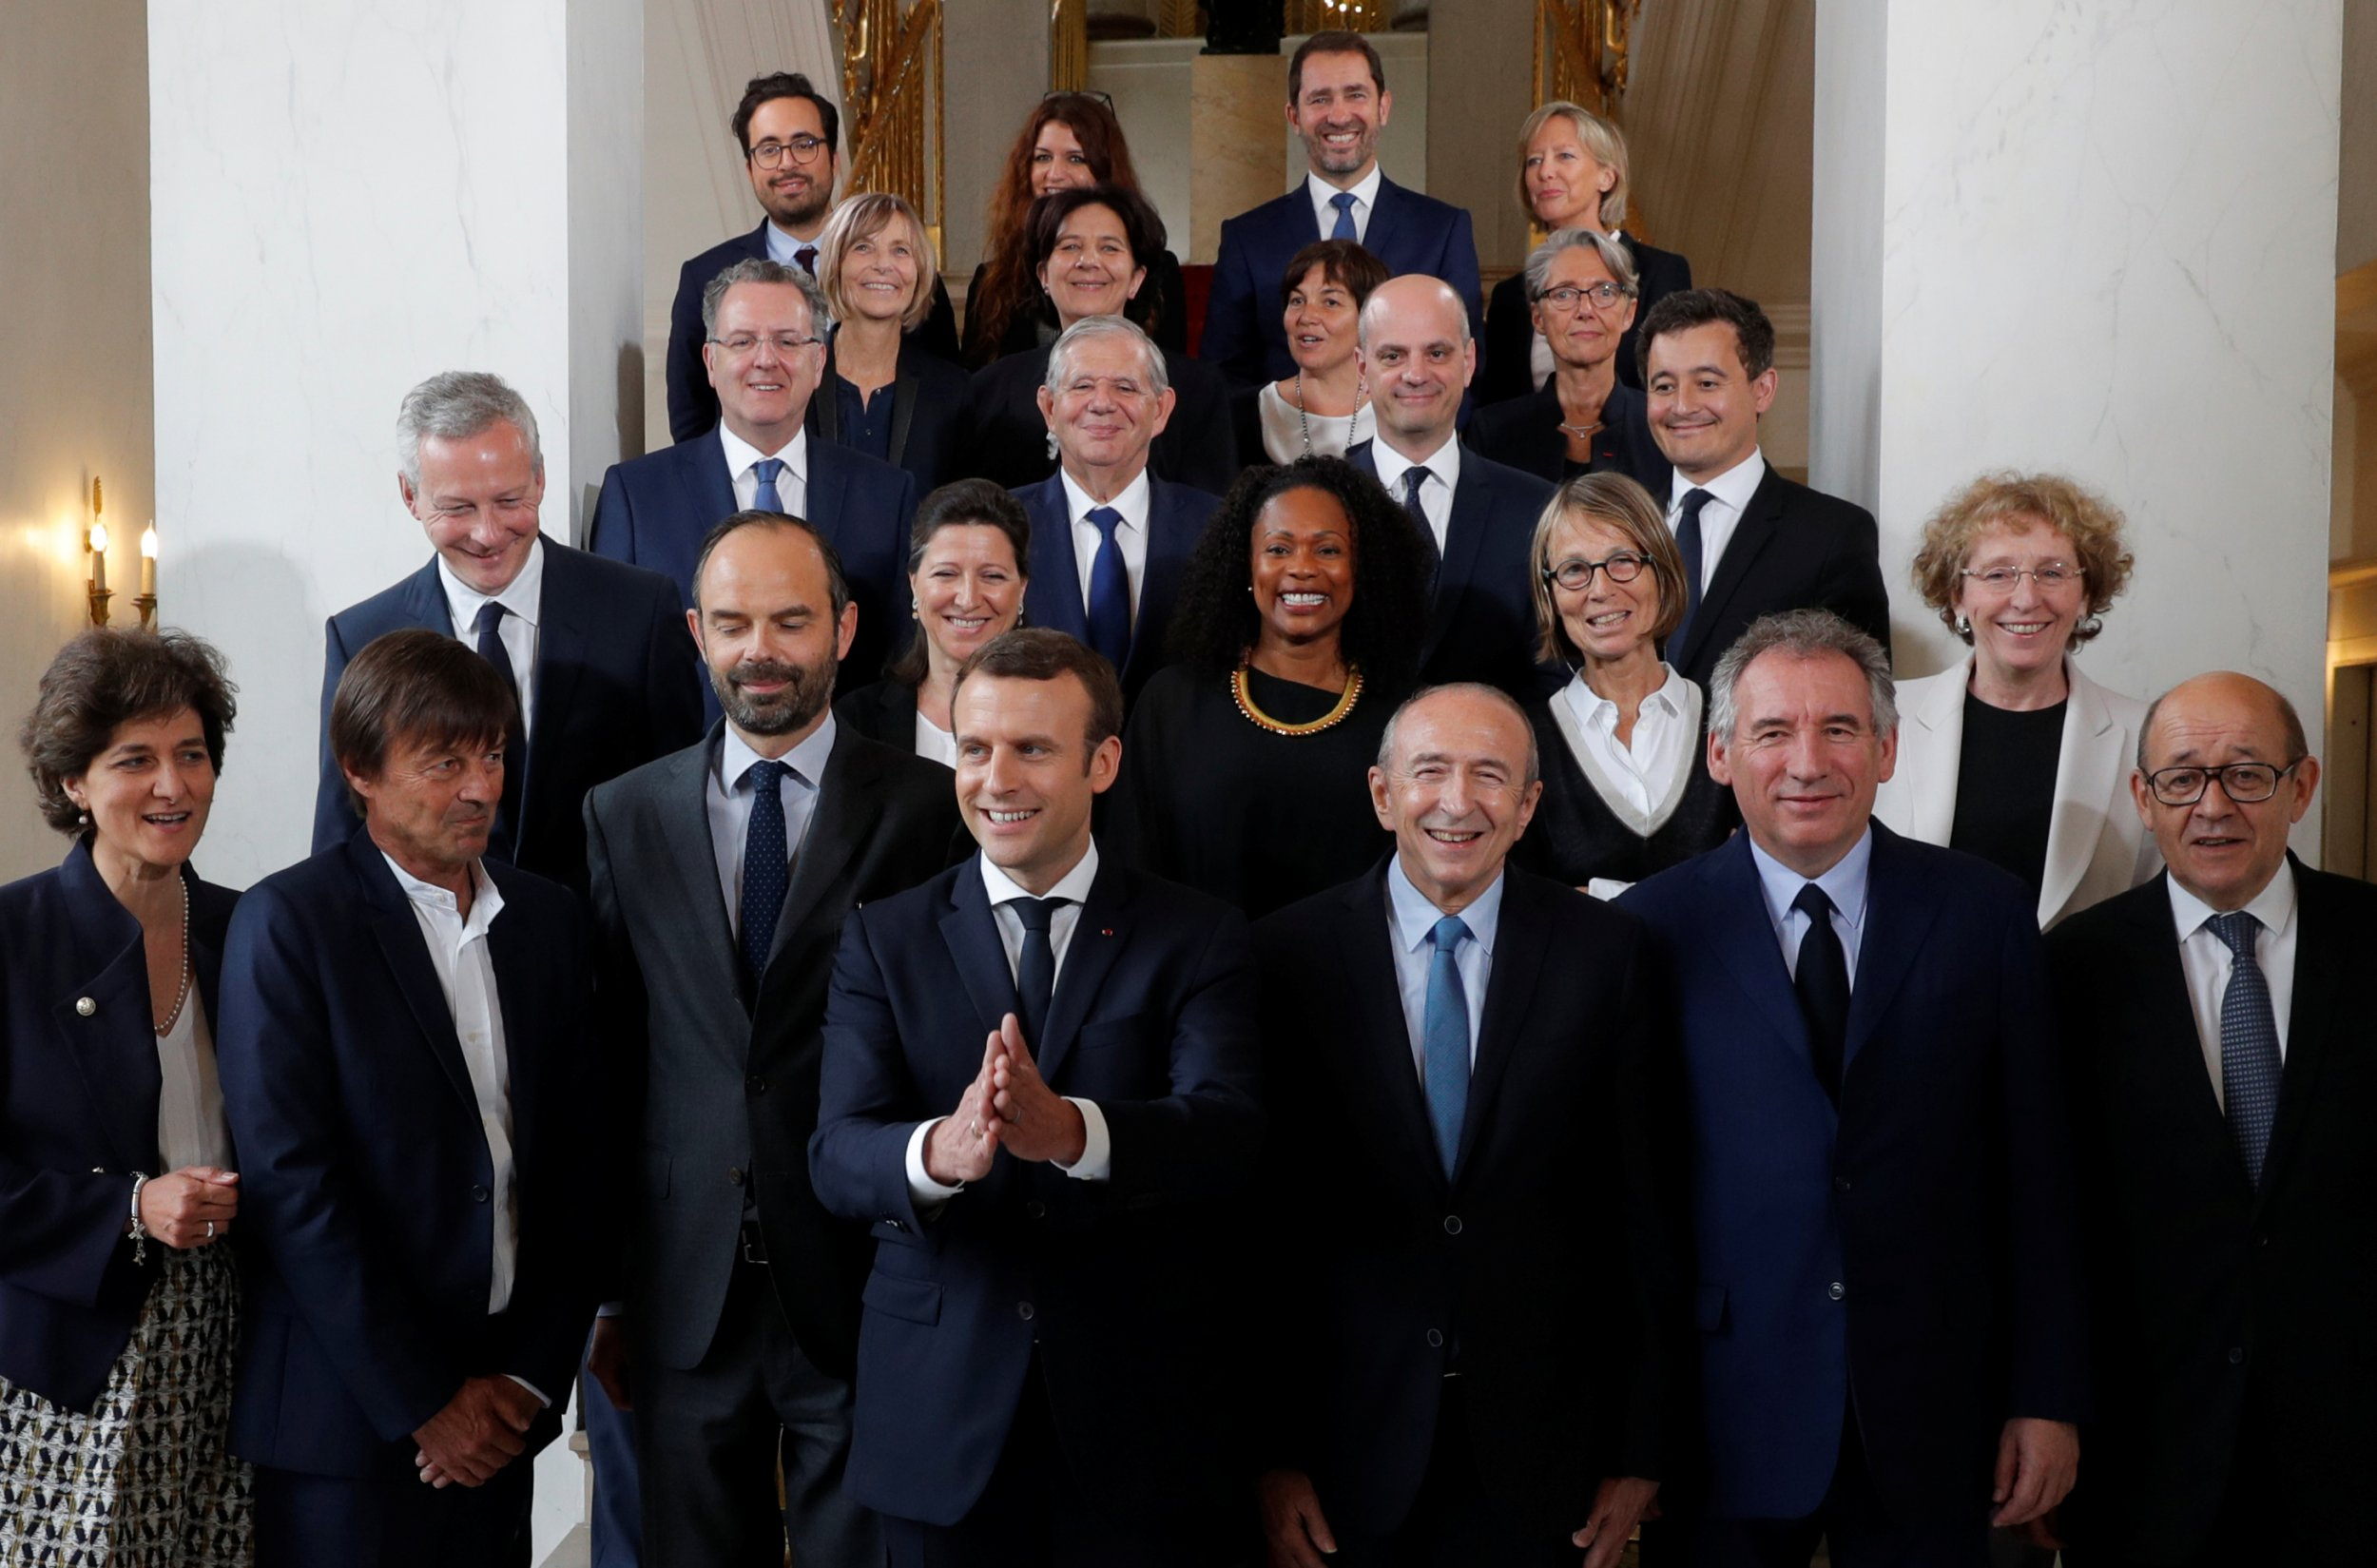 French President Emmanuel Macron and his cabinet